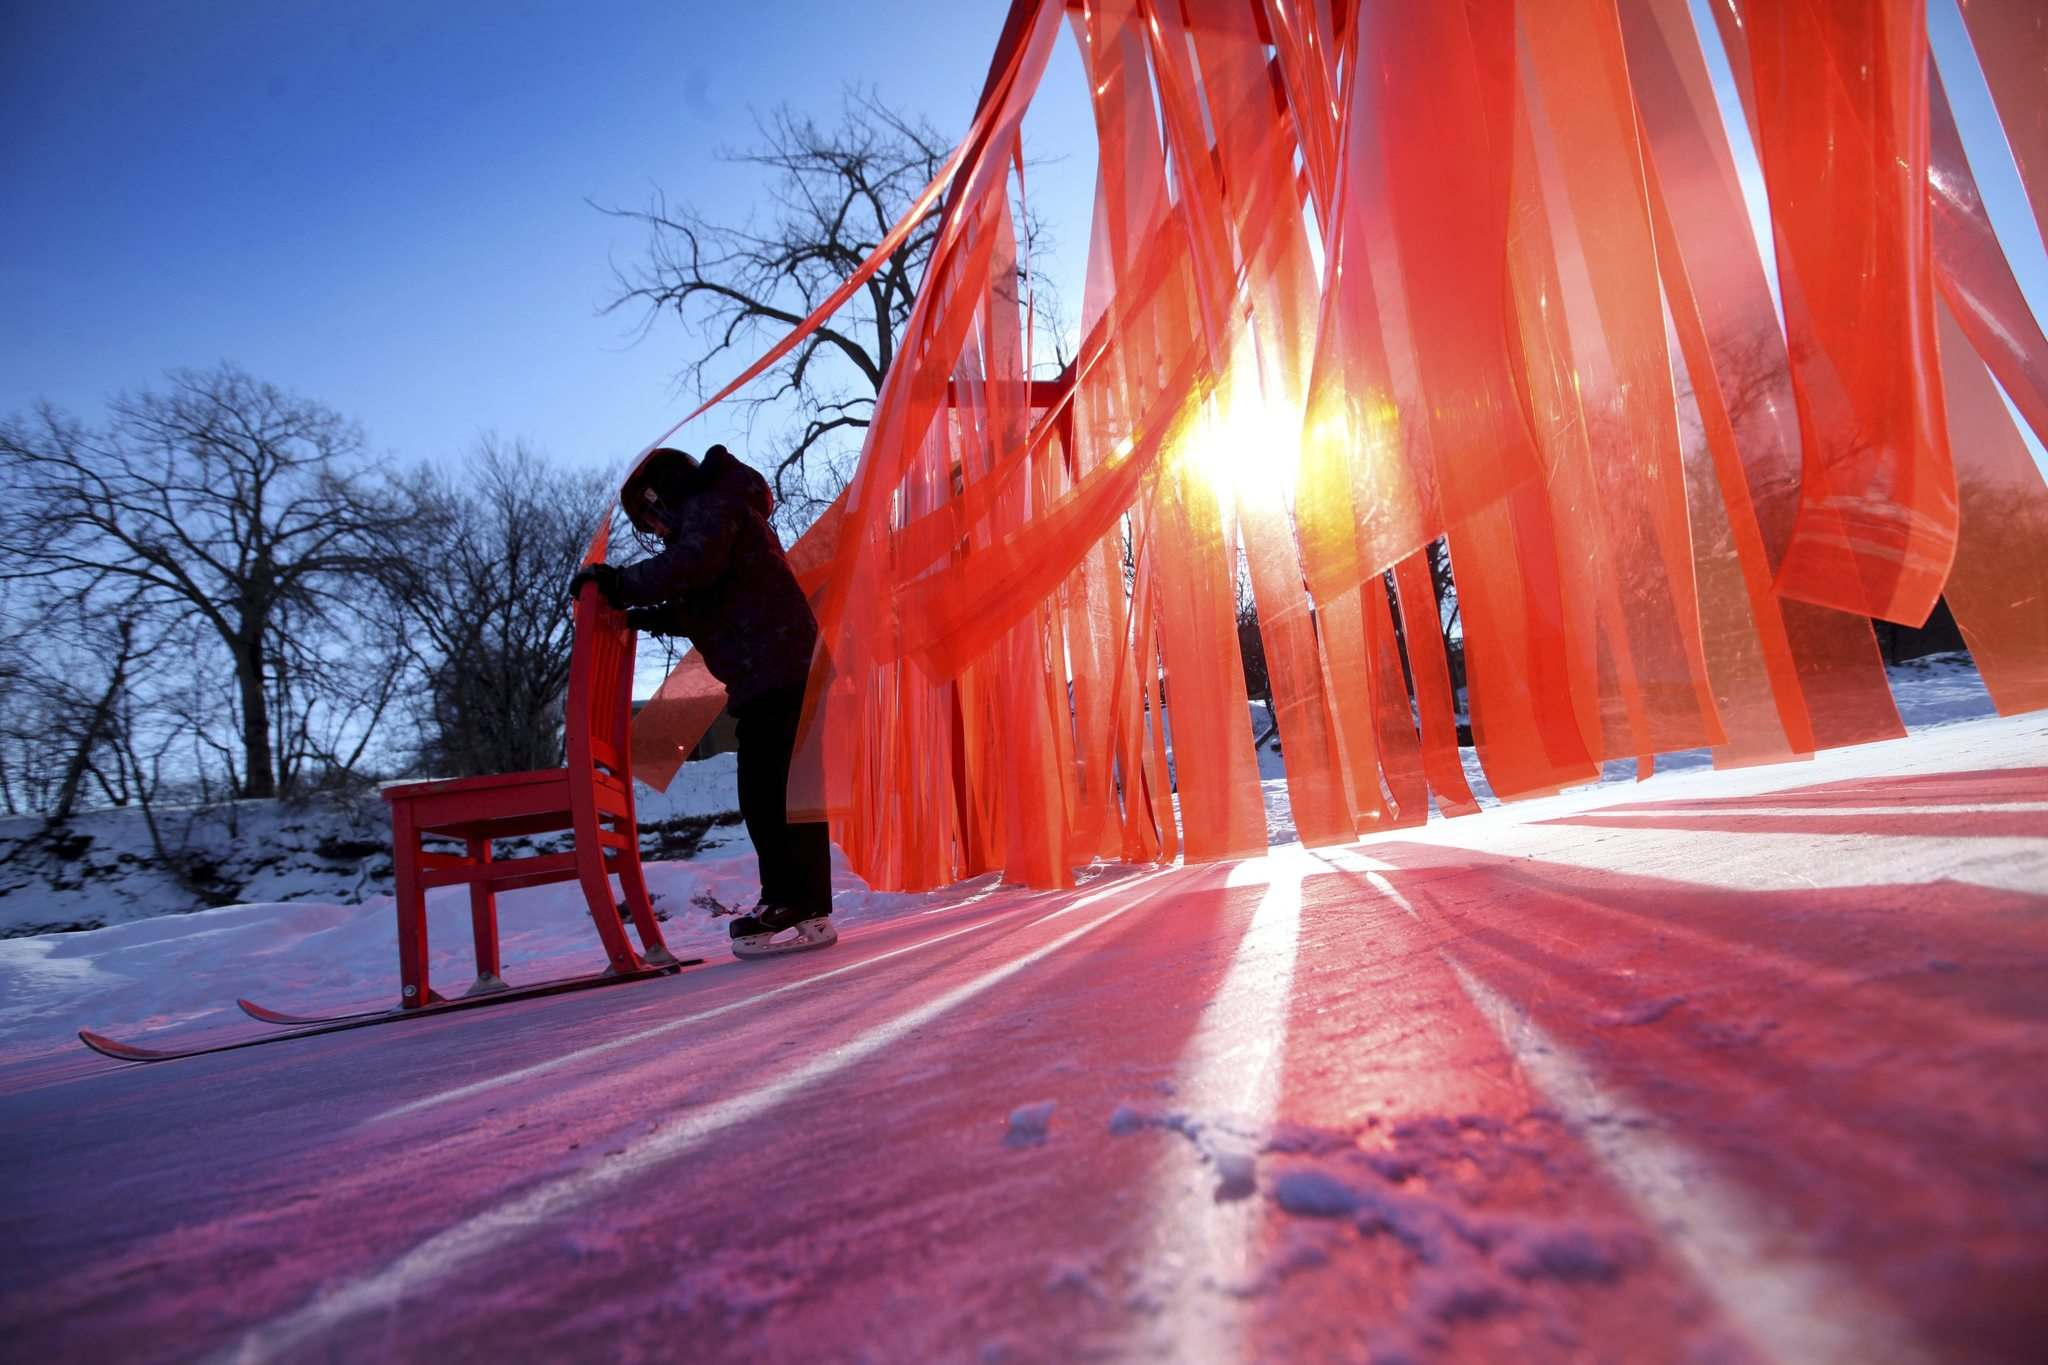 <p>Ethan Offman, age 9, pushes a kicksled through the Open Border warming hut, a wall made out of orange plastic strips hanging across the river trail along the Assiniboine River.</p>